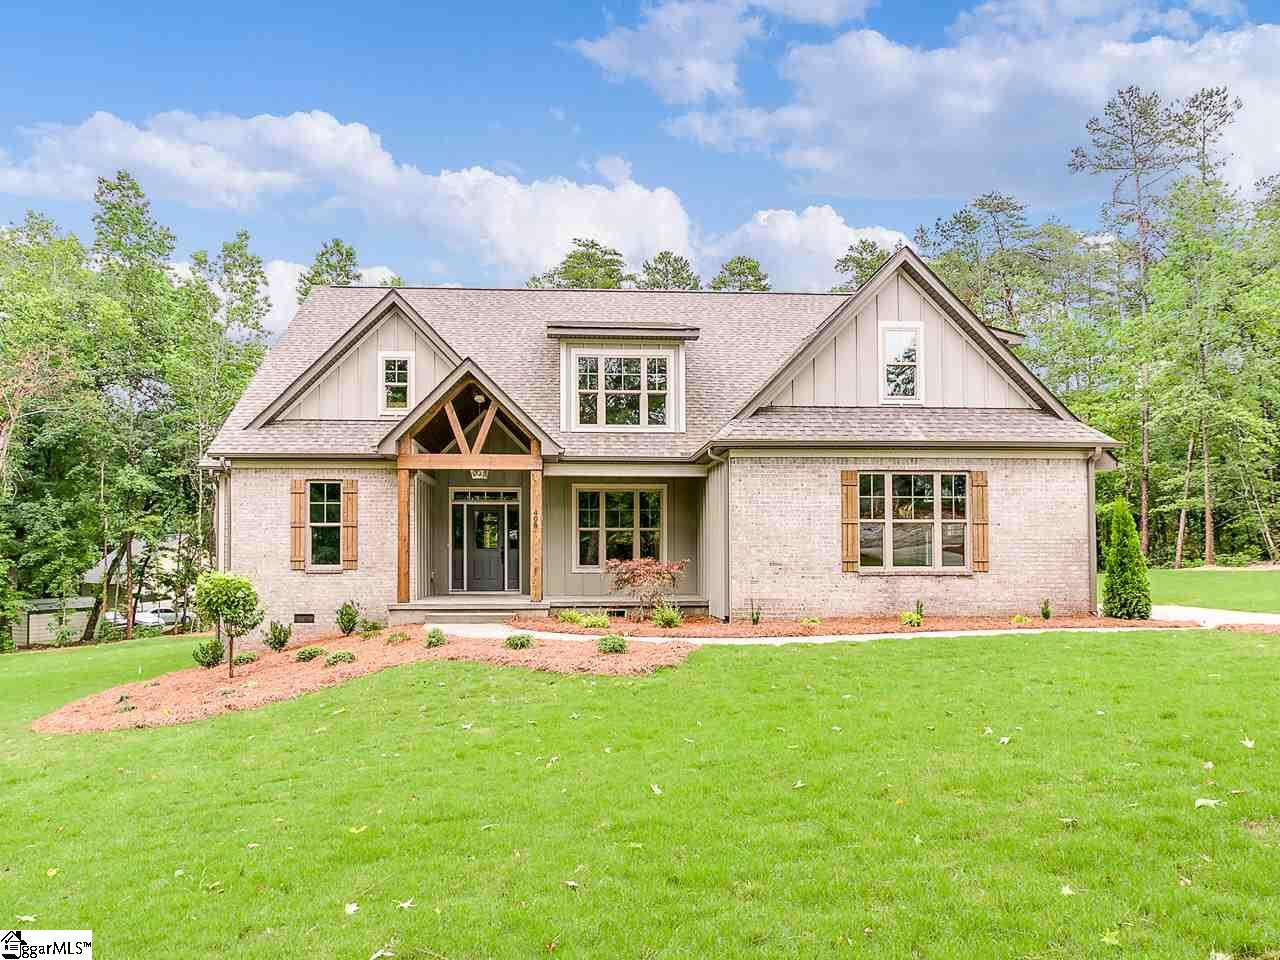 408 Isaqueena Drive Greenville and Spartanburg Home Listings - Joanna K Realty, Inc Real Estate